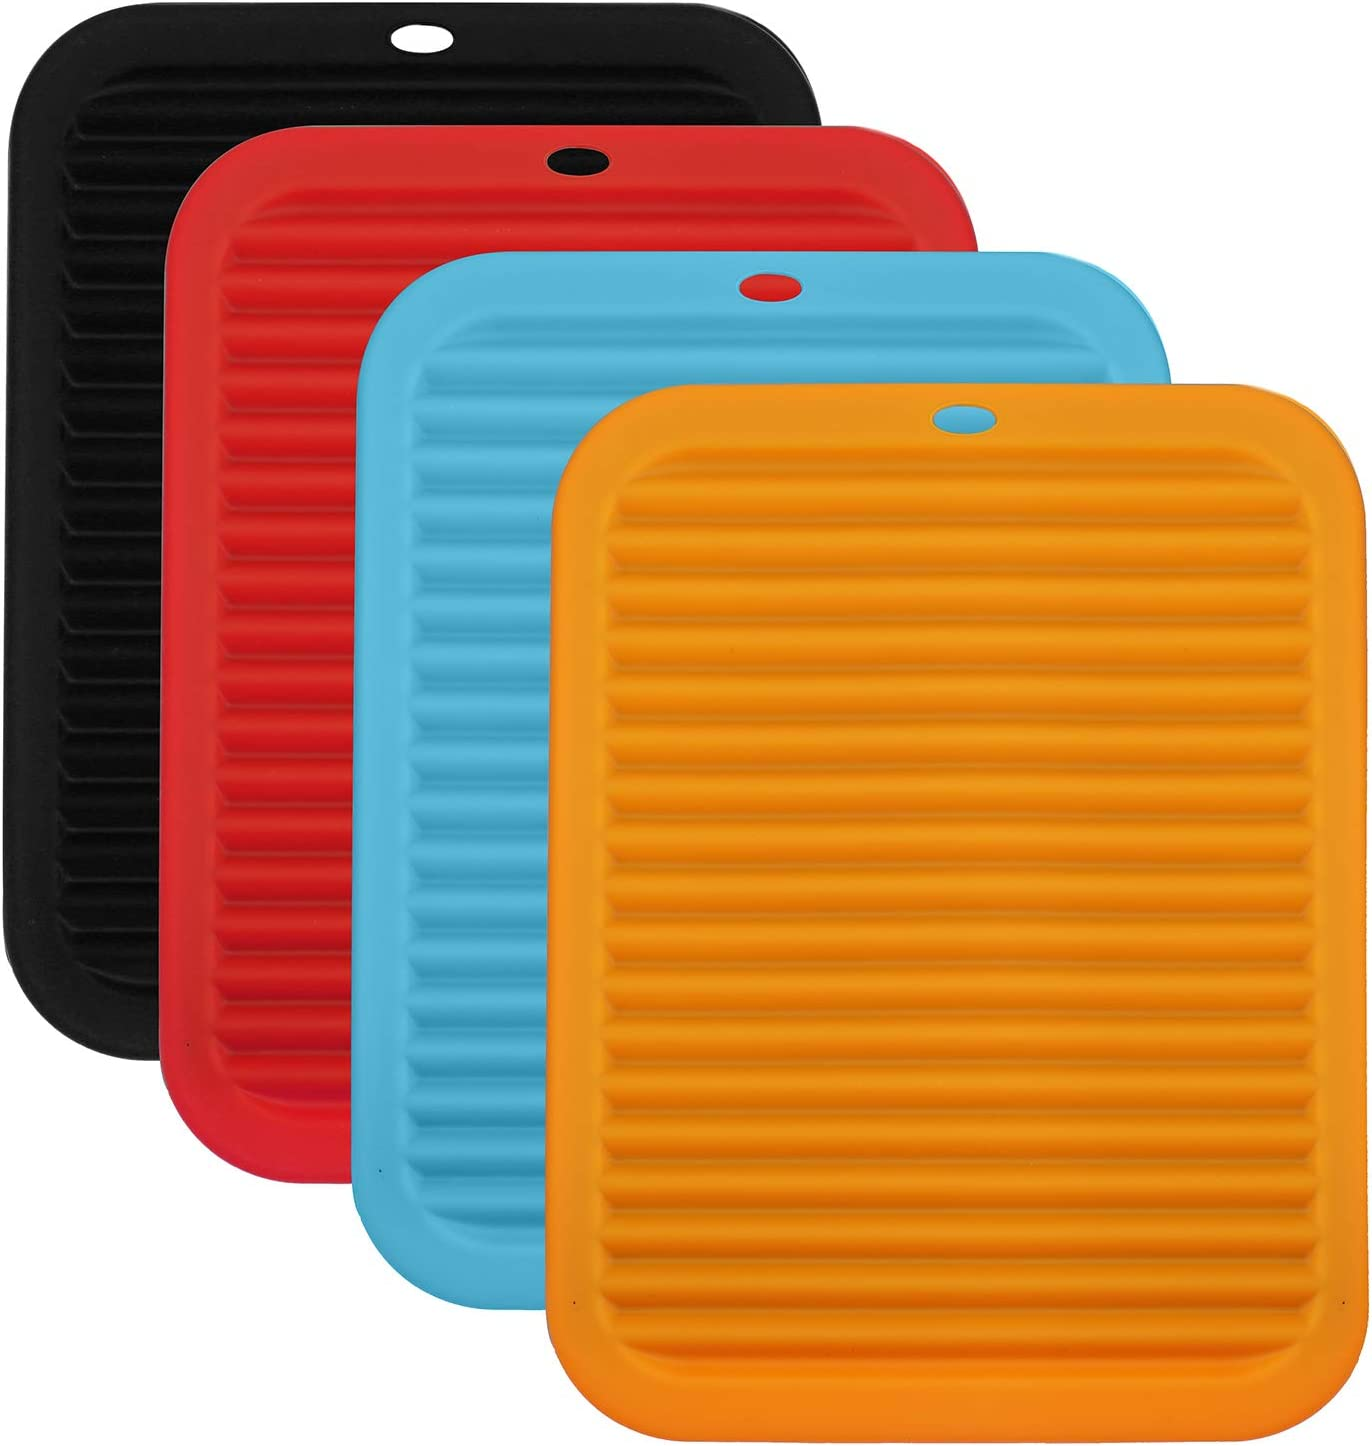 Hedume 4 Pack Silicone Pot Mat, Heat Resistant Food Grade Silicone Trivet Mats, Rectangular Drying Mat for Countertop Trivet Pads Hot Dishes, Pots and Pans (4 Colors)